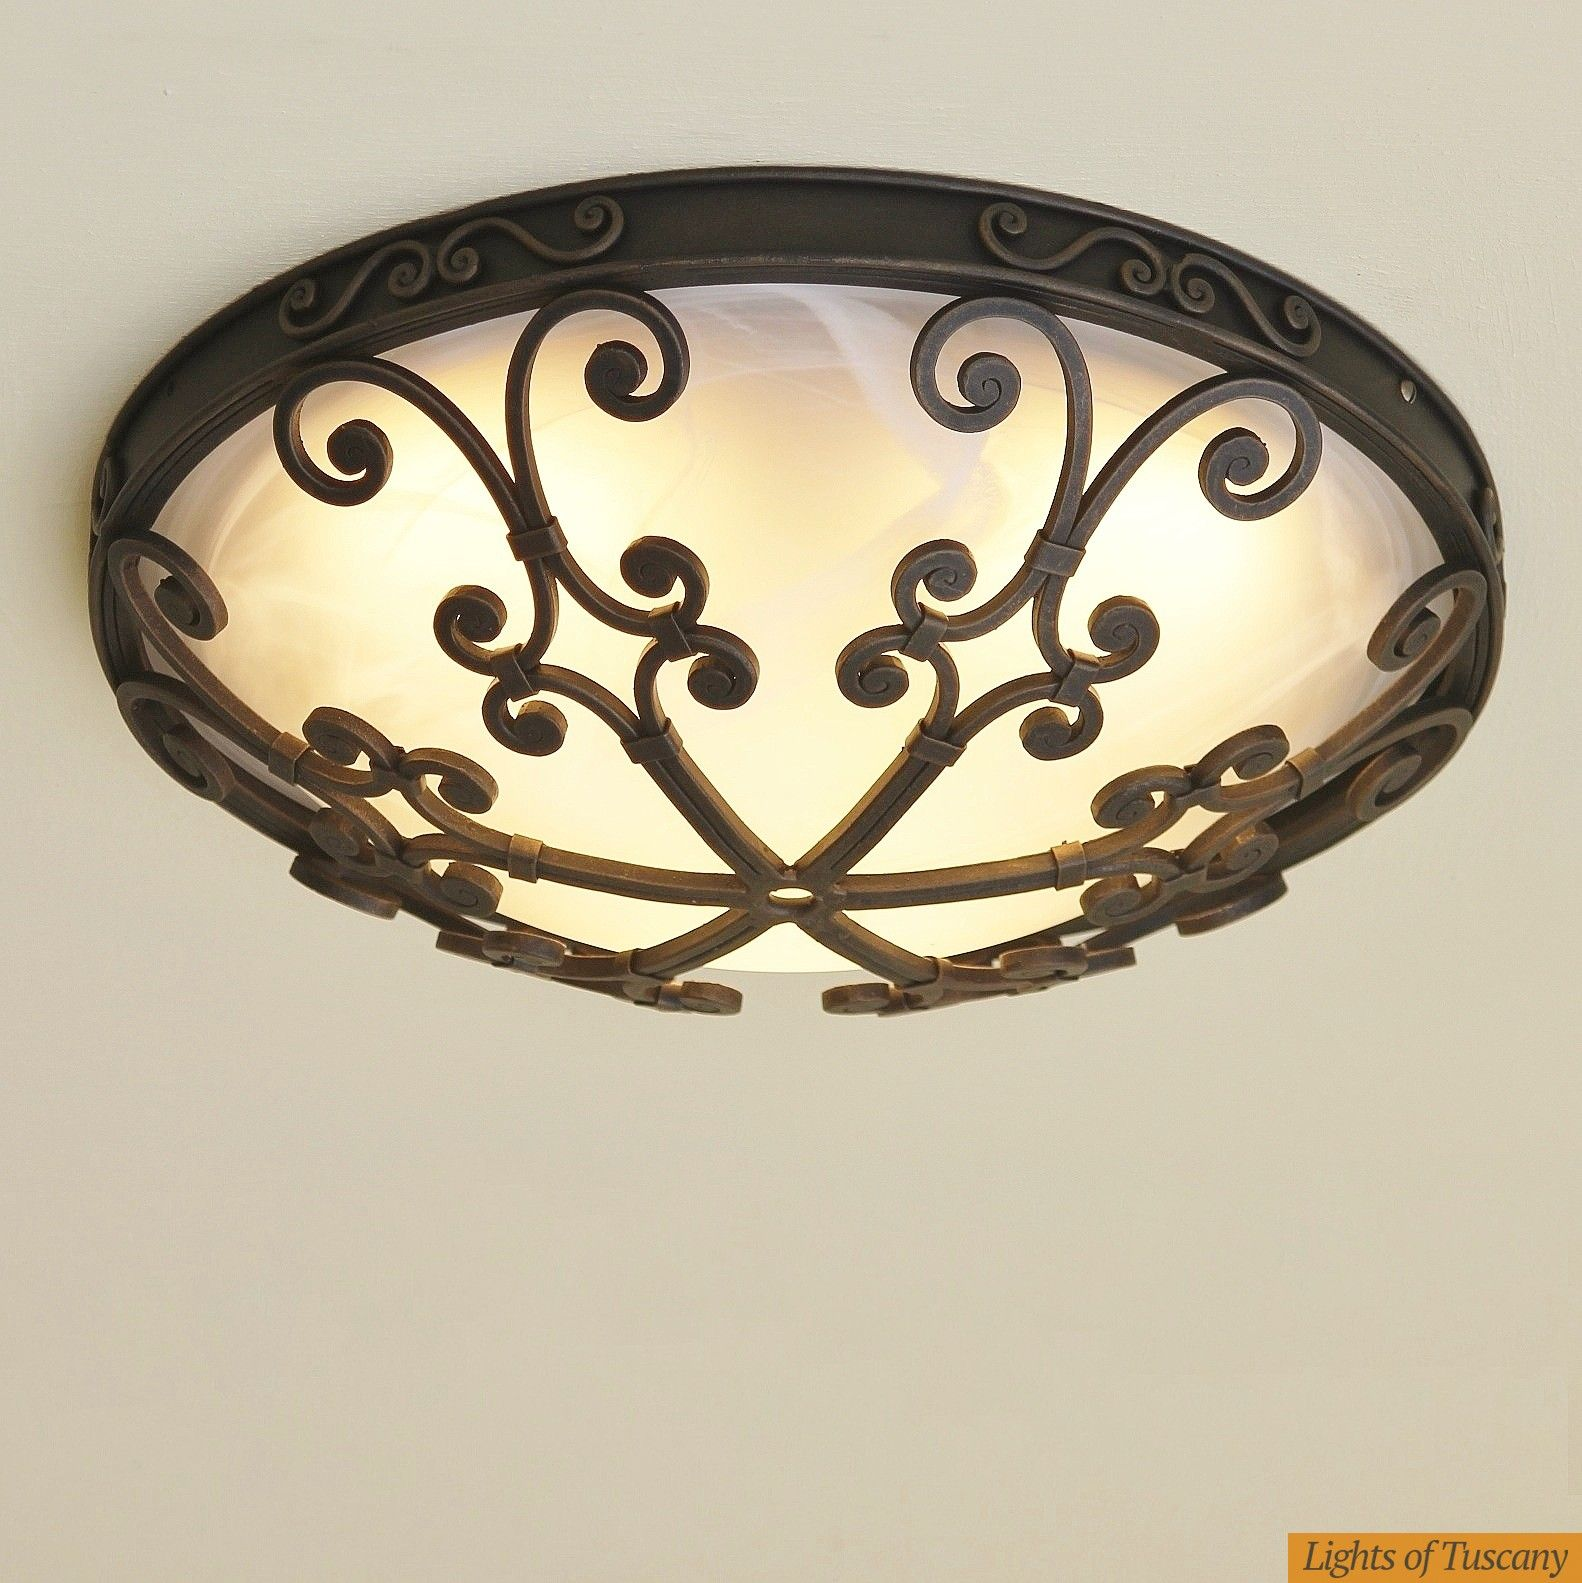 Spanish Style Ceiling Flush Mount Lighting Fixture Cerros